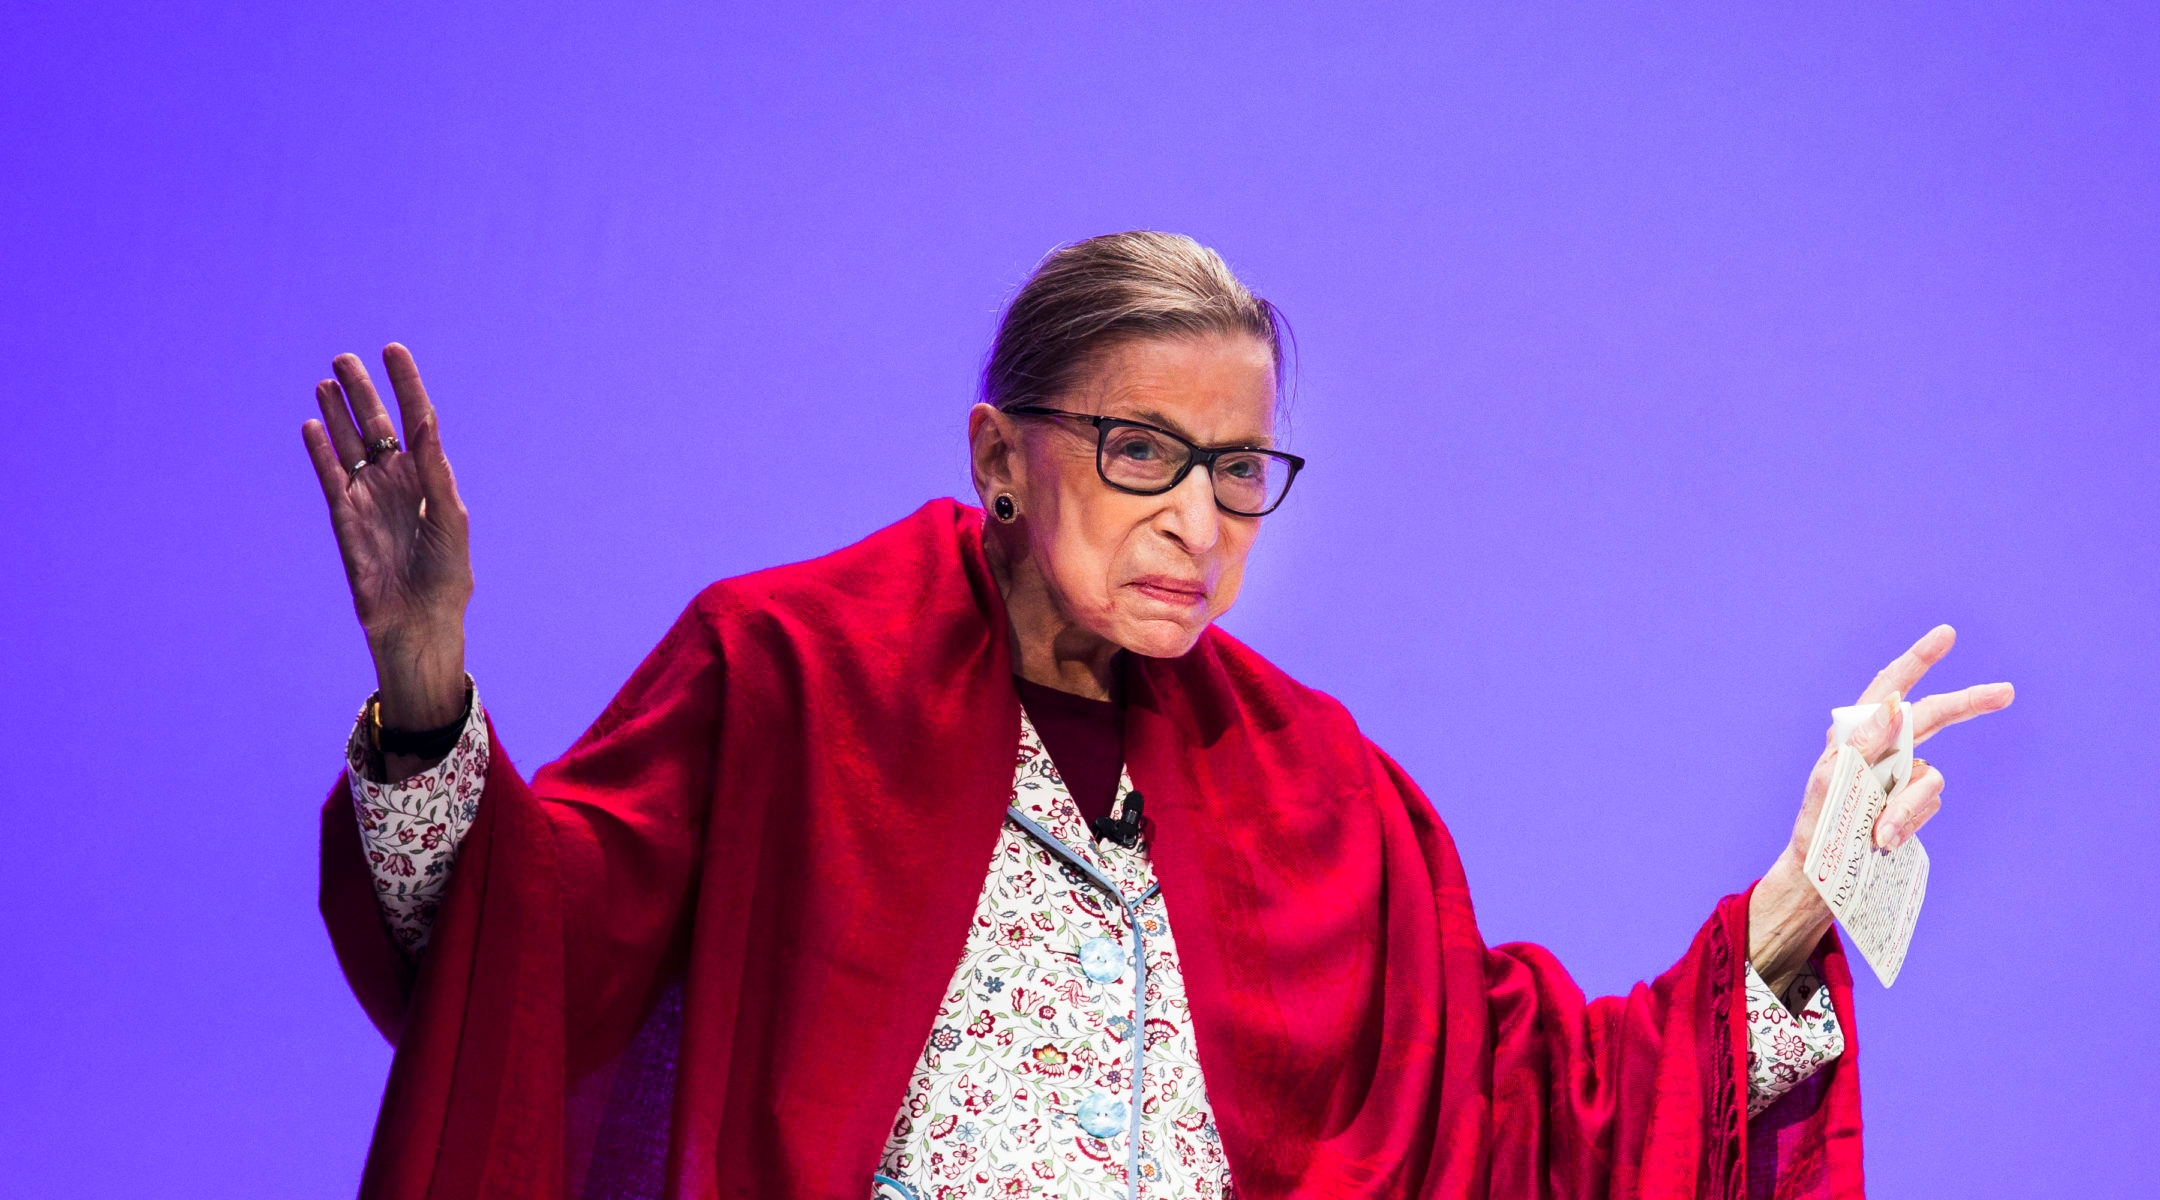 Ruth Bader Ginsburg at Amherst College in Amherst, Mass., Oct. 3, 2019. (Erin Clark for The Boston Globe via Getty Images)